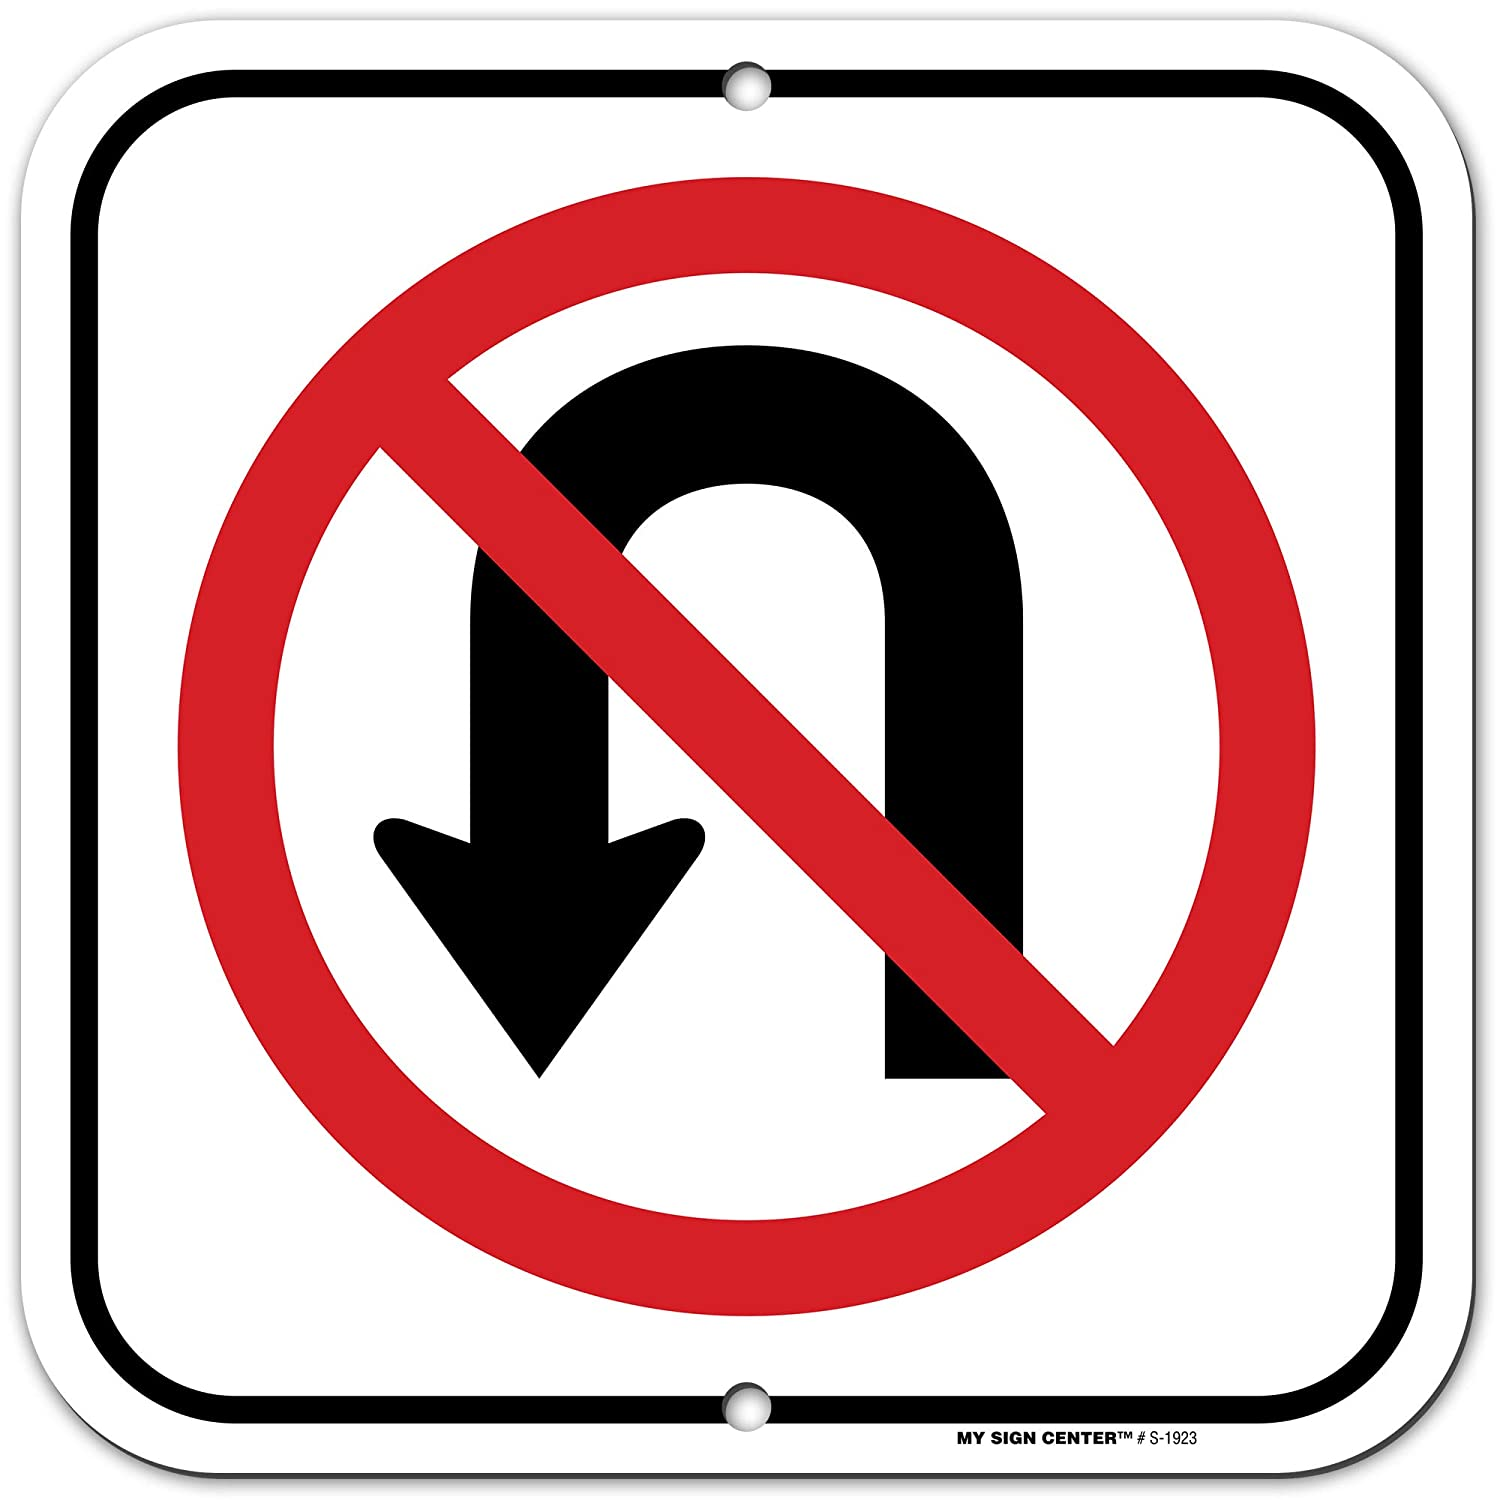 "No U Turn Sign, Made Out of .040 Rust-Free Aluminum, Indoor/Outdoor Use, UV Protected and Fade-Resistant, 11"" x 11"", by My Sign Center"